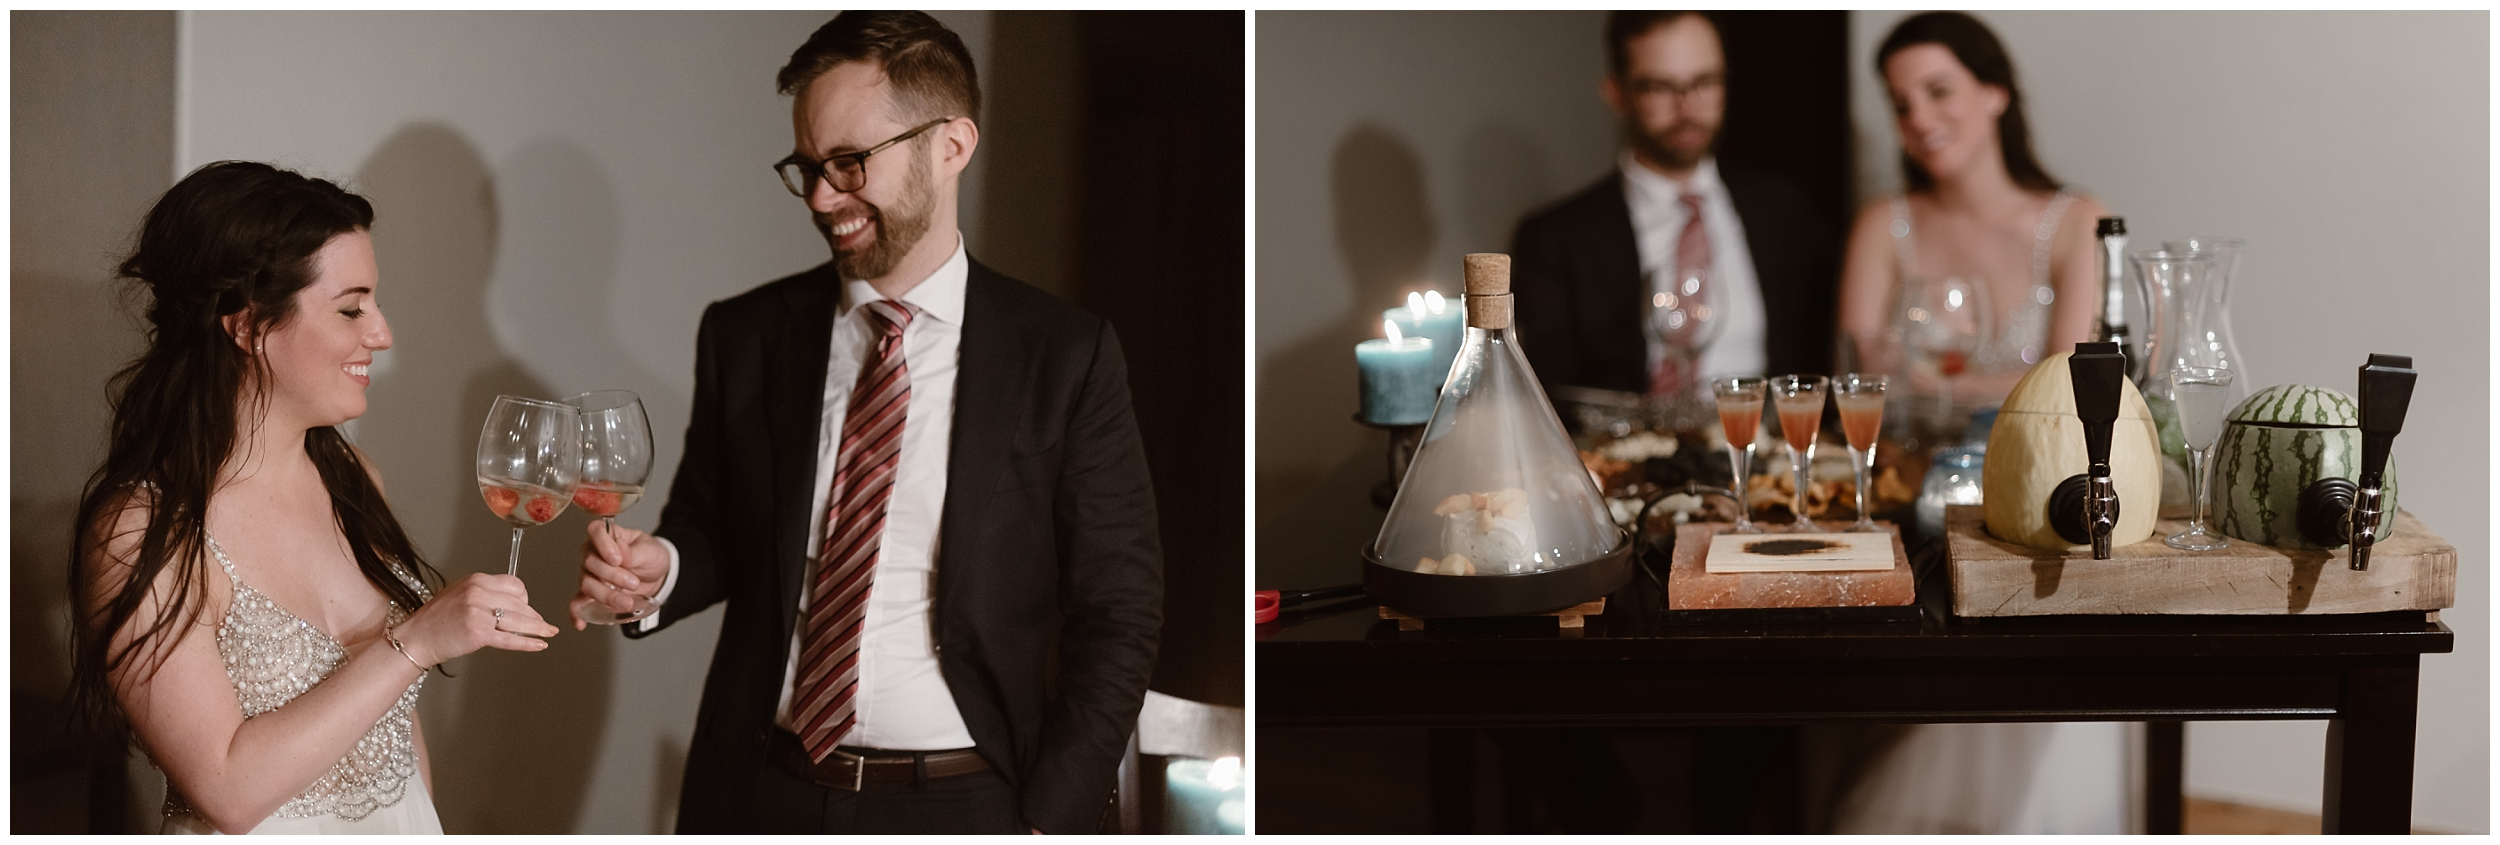 In these side-by-side elopement photos, Katie and Logan, the bride and groom, celebrate their Colorado mountain wedding with a party after eloping. In front of them is a table full of delicious food and drinks. They clink their glasses to toast their reception after eloping.